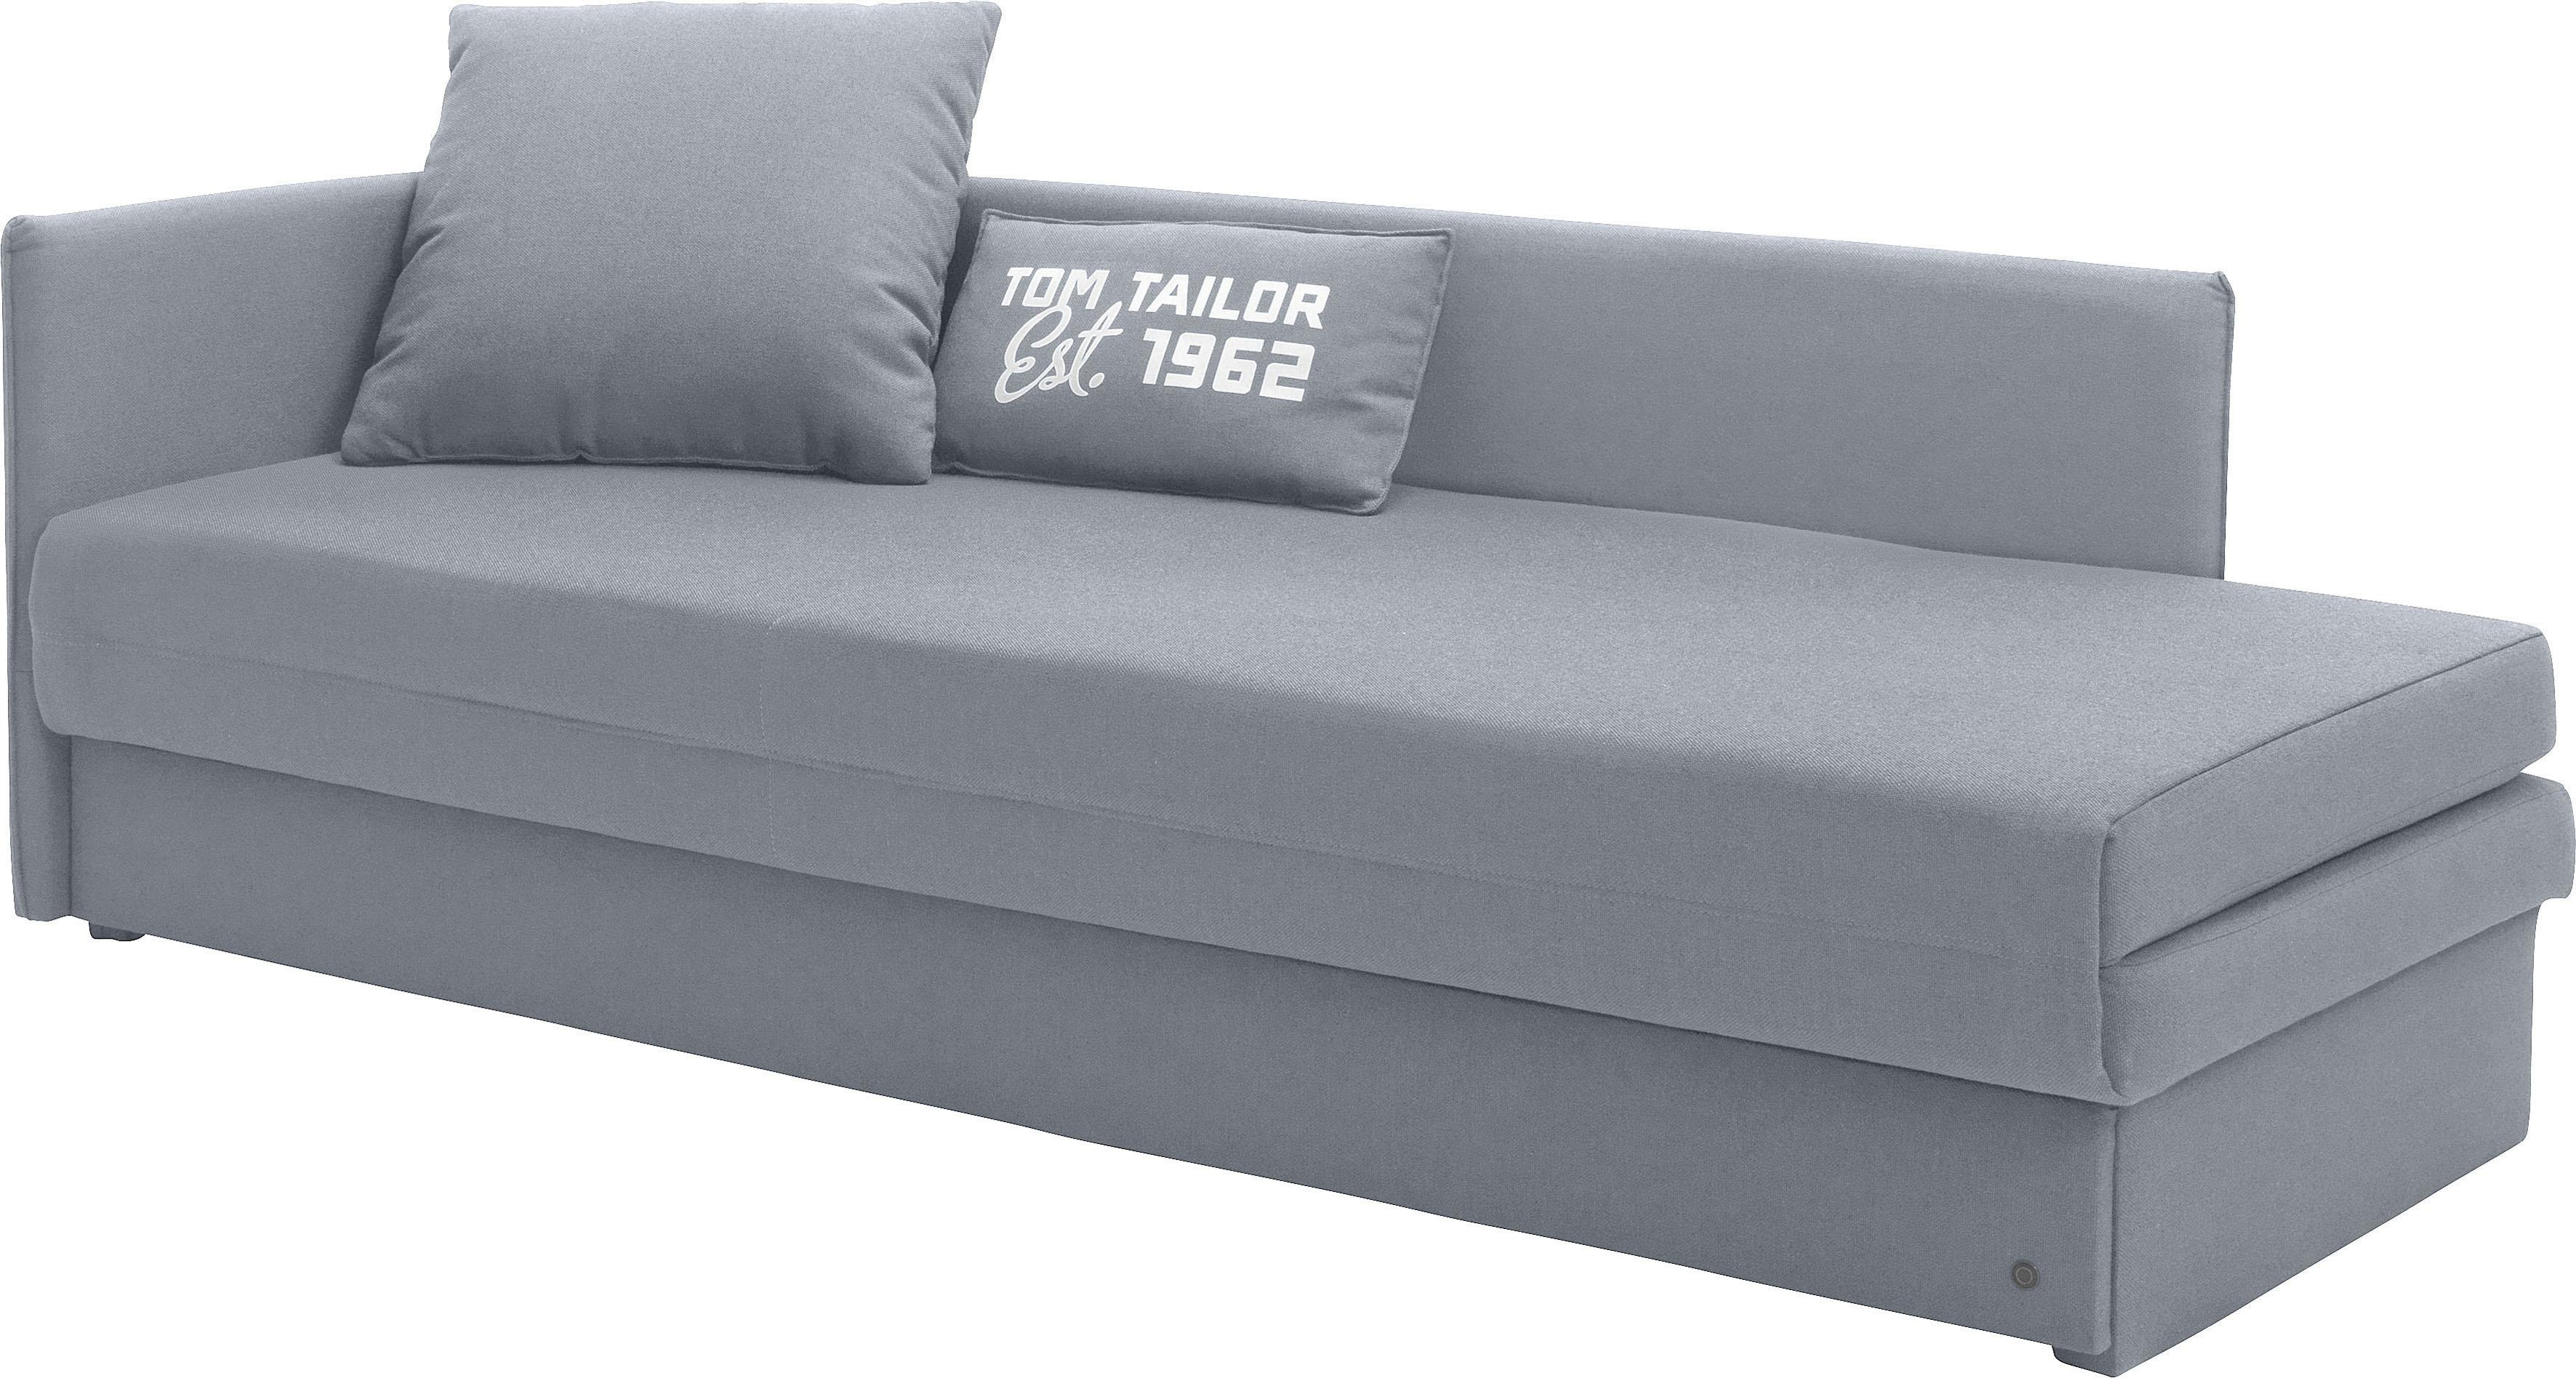 TOM TAILOR Schlafsofa GUEST